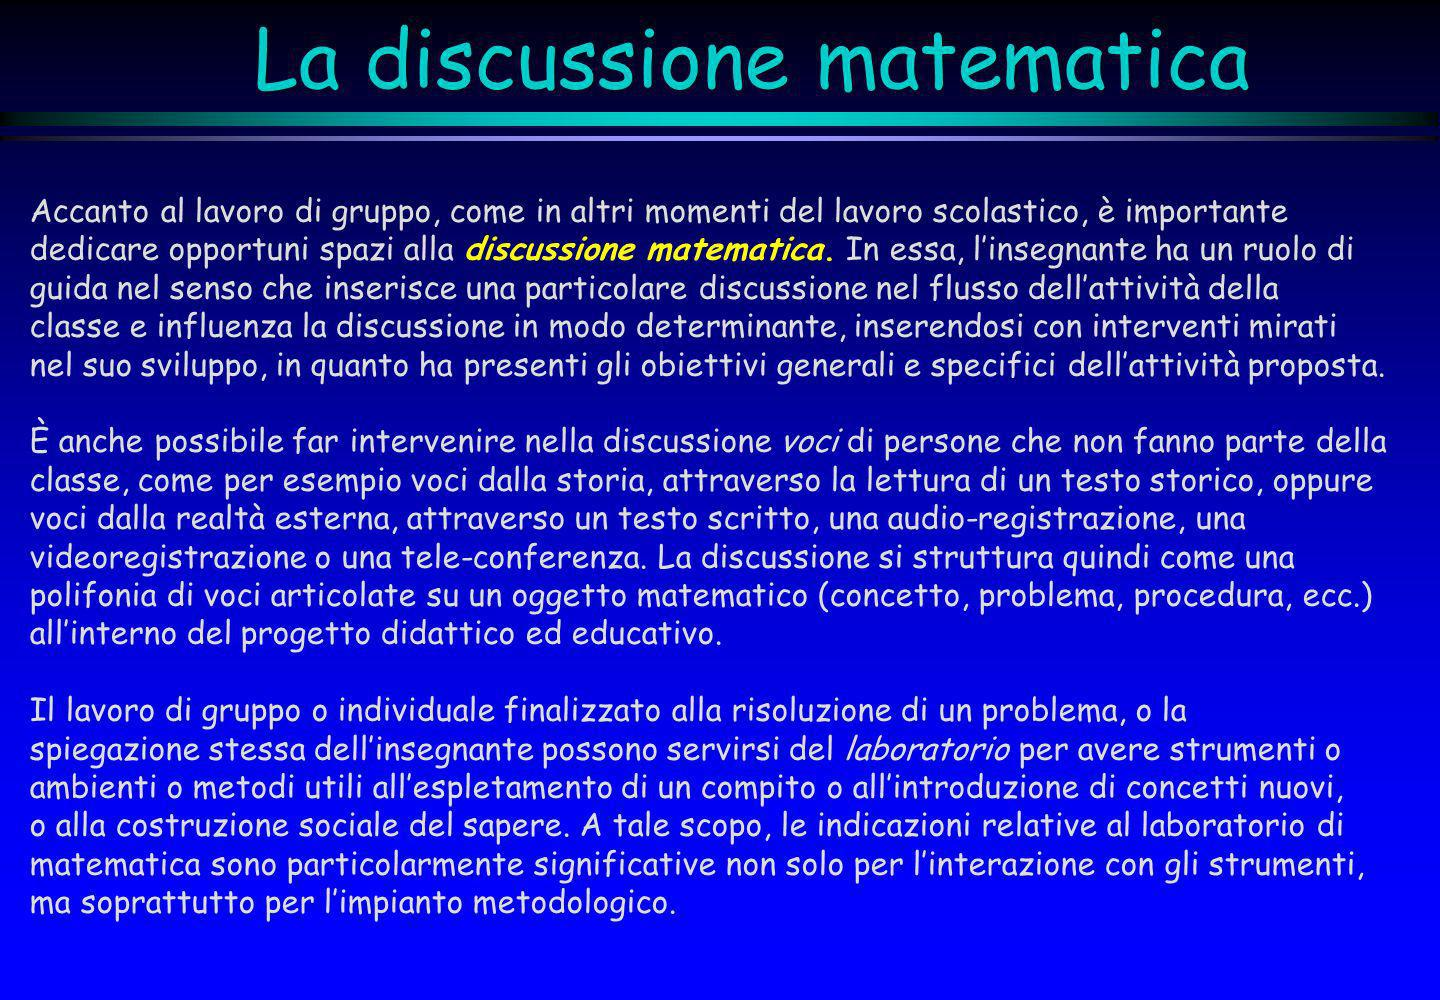 La discussione matematica